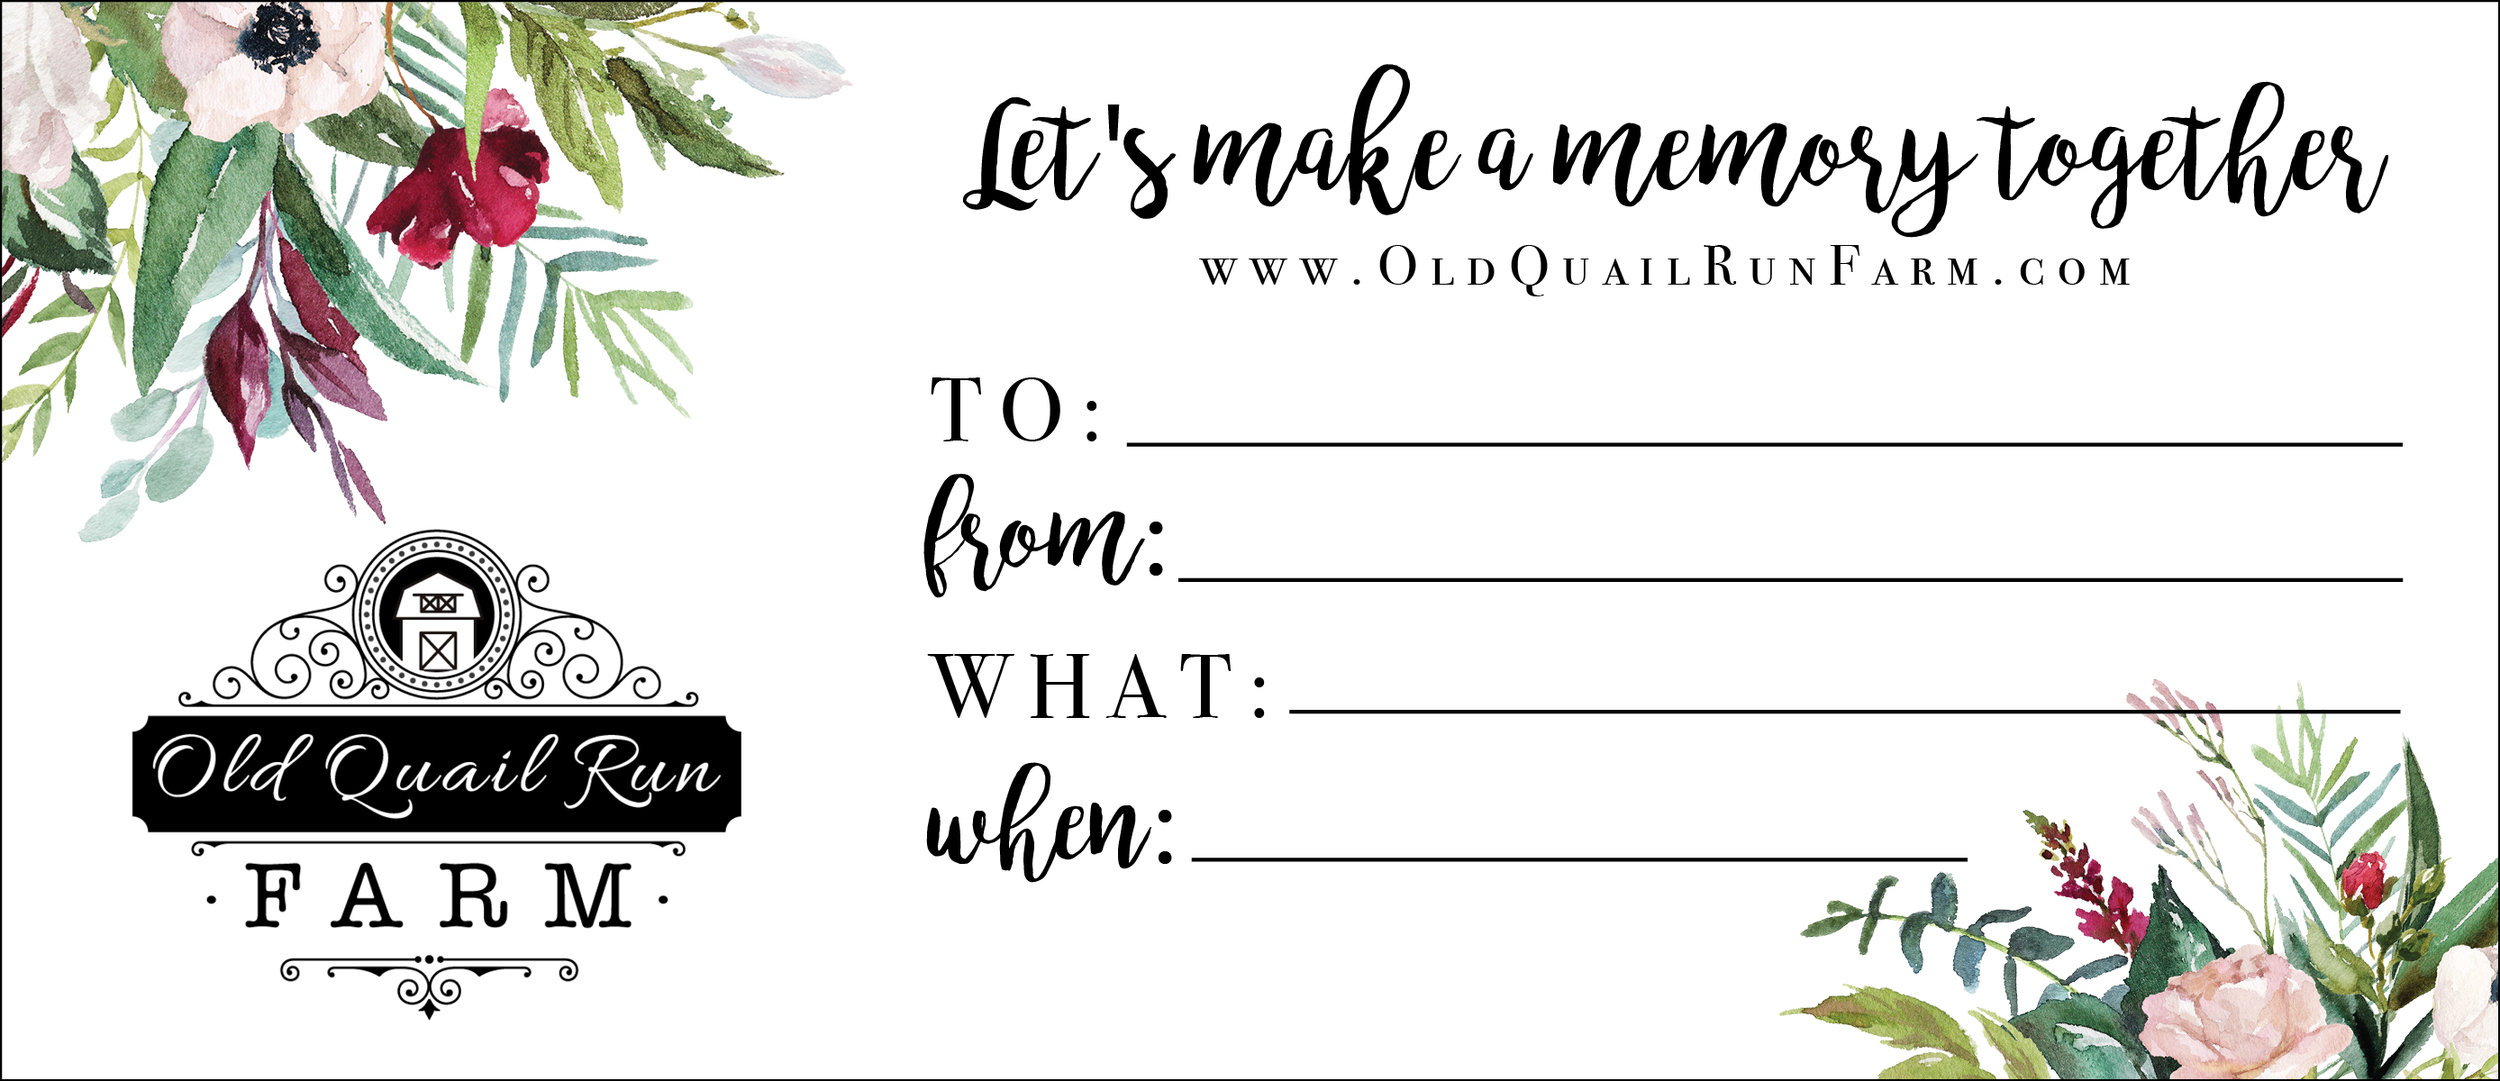 OQRF Event Gift Certificates-FB.jpg